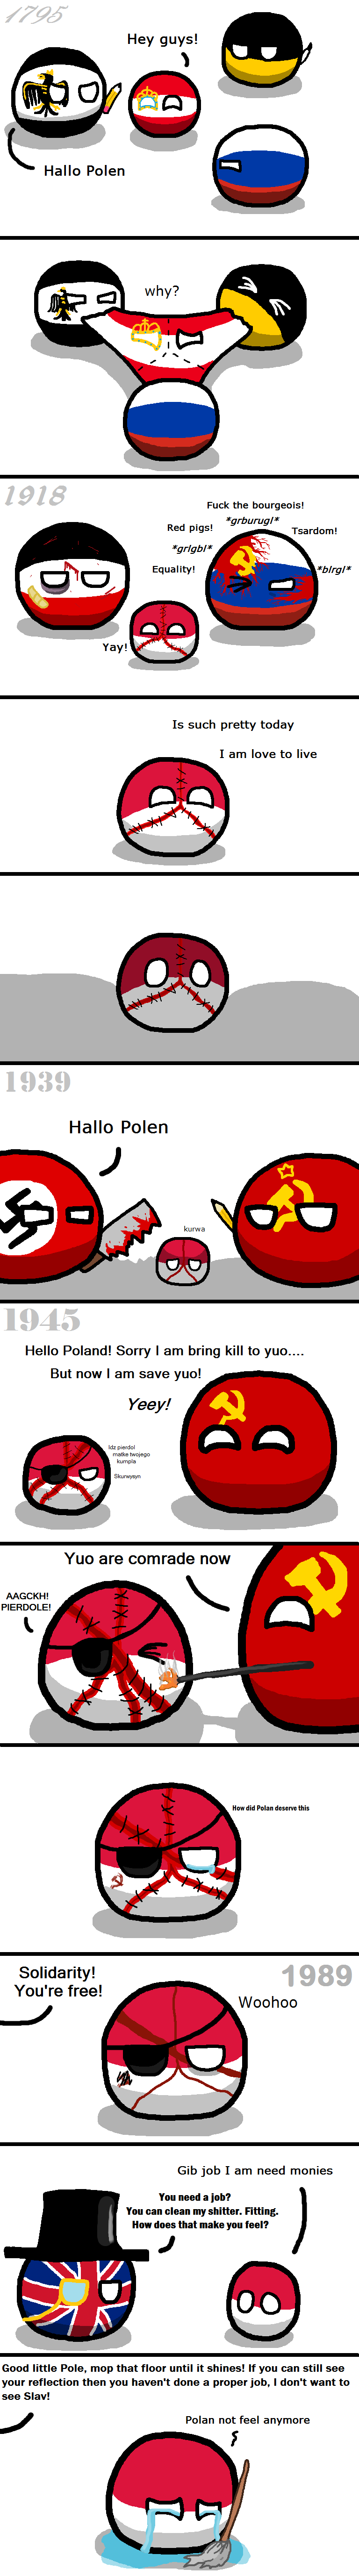 country-balls-poland-has-it-rough